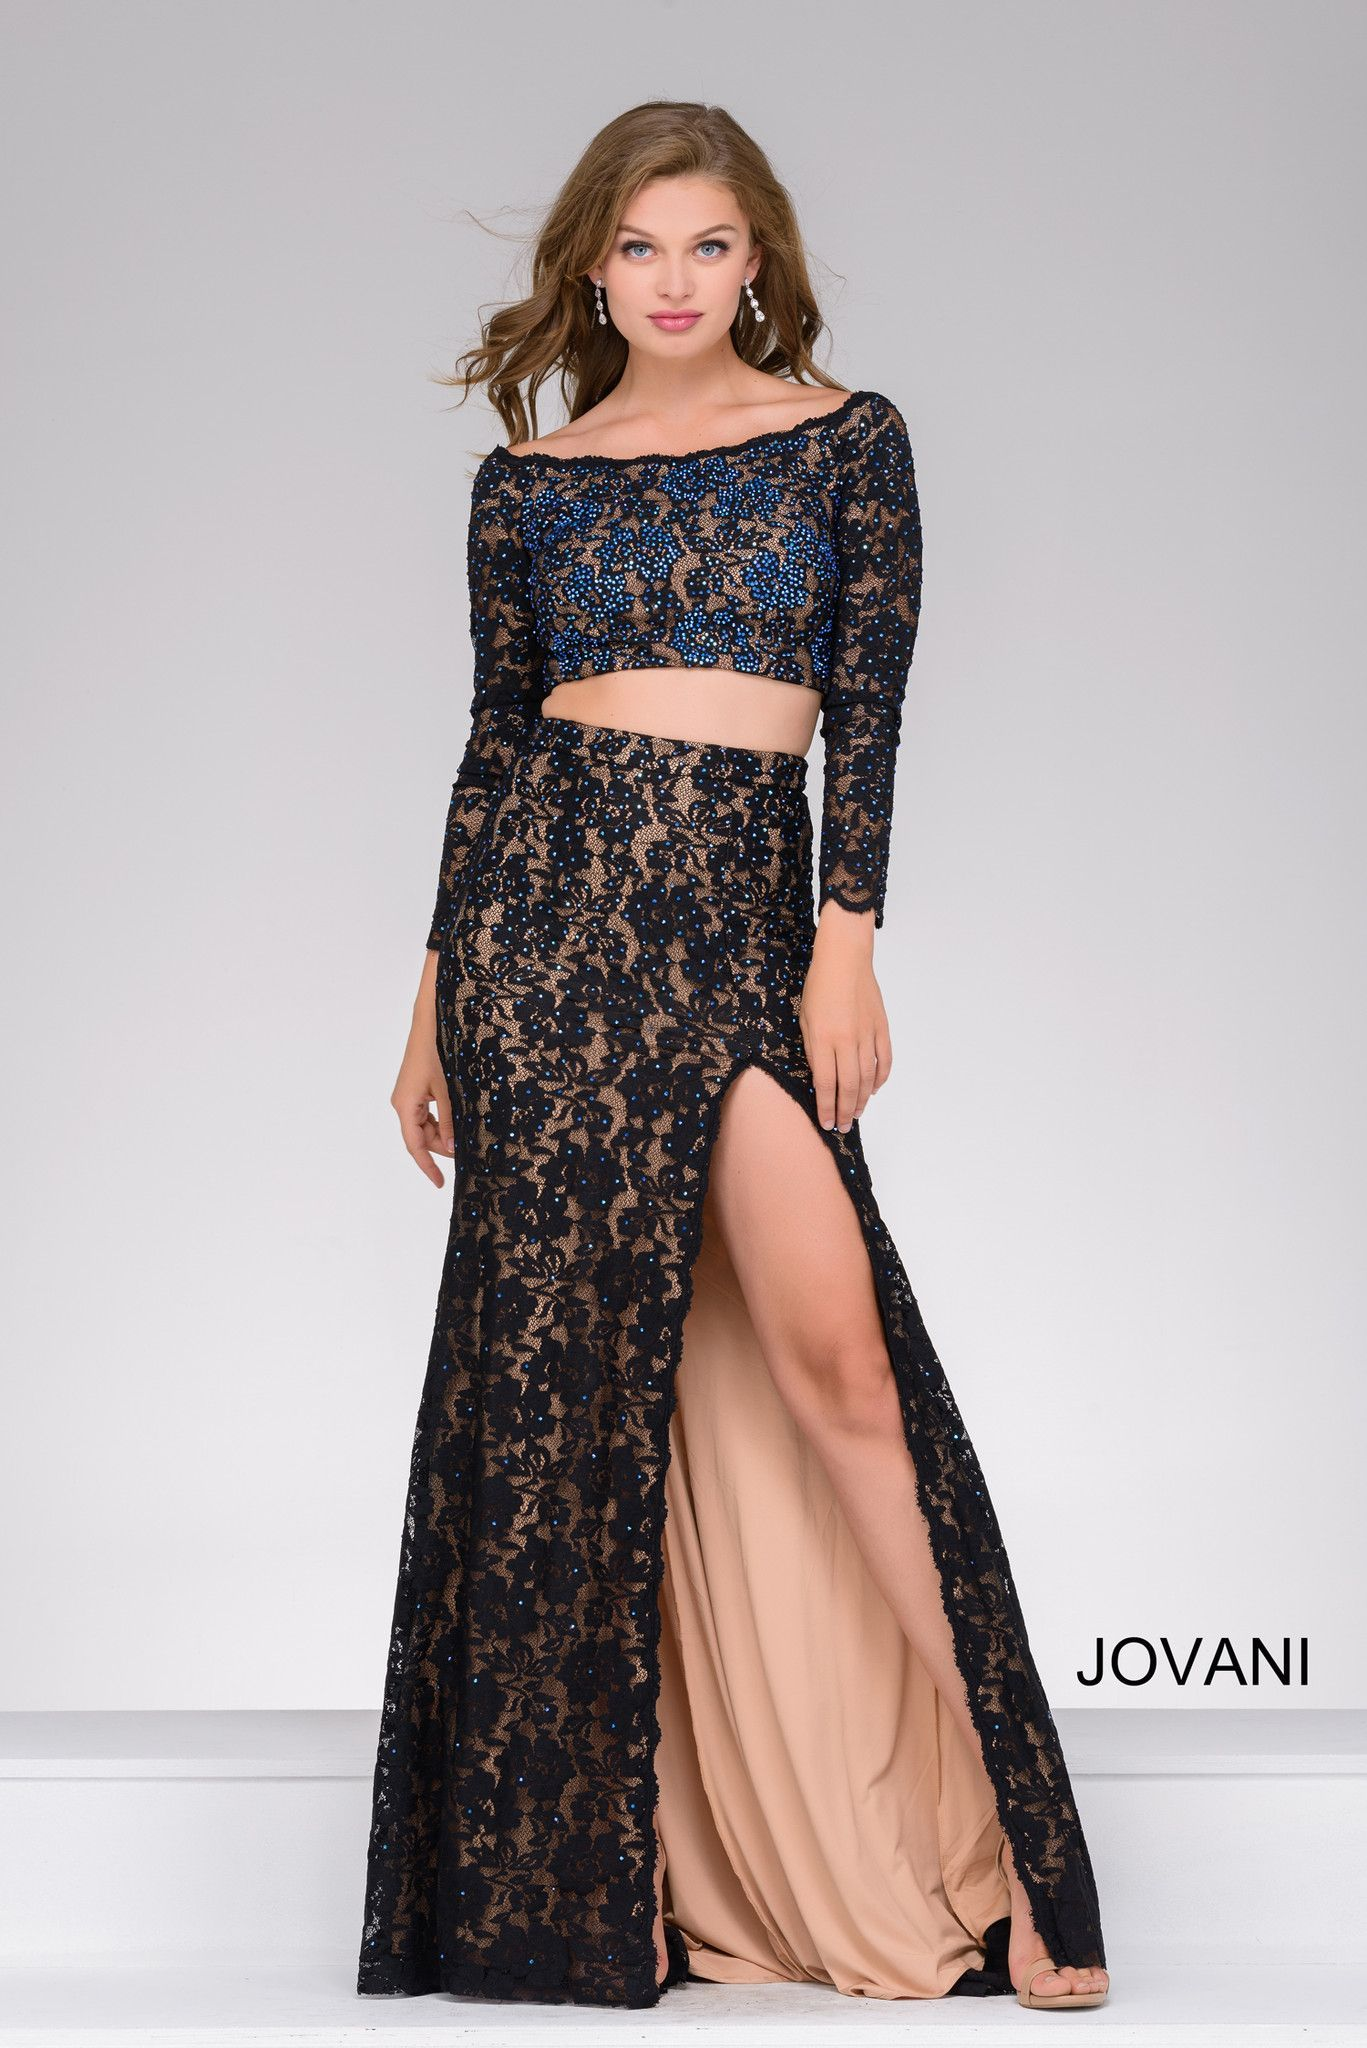 Jovani prom dress style products dresses and prom dresses